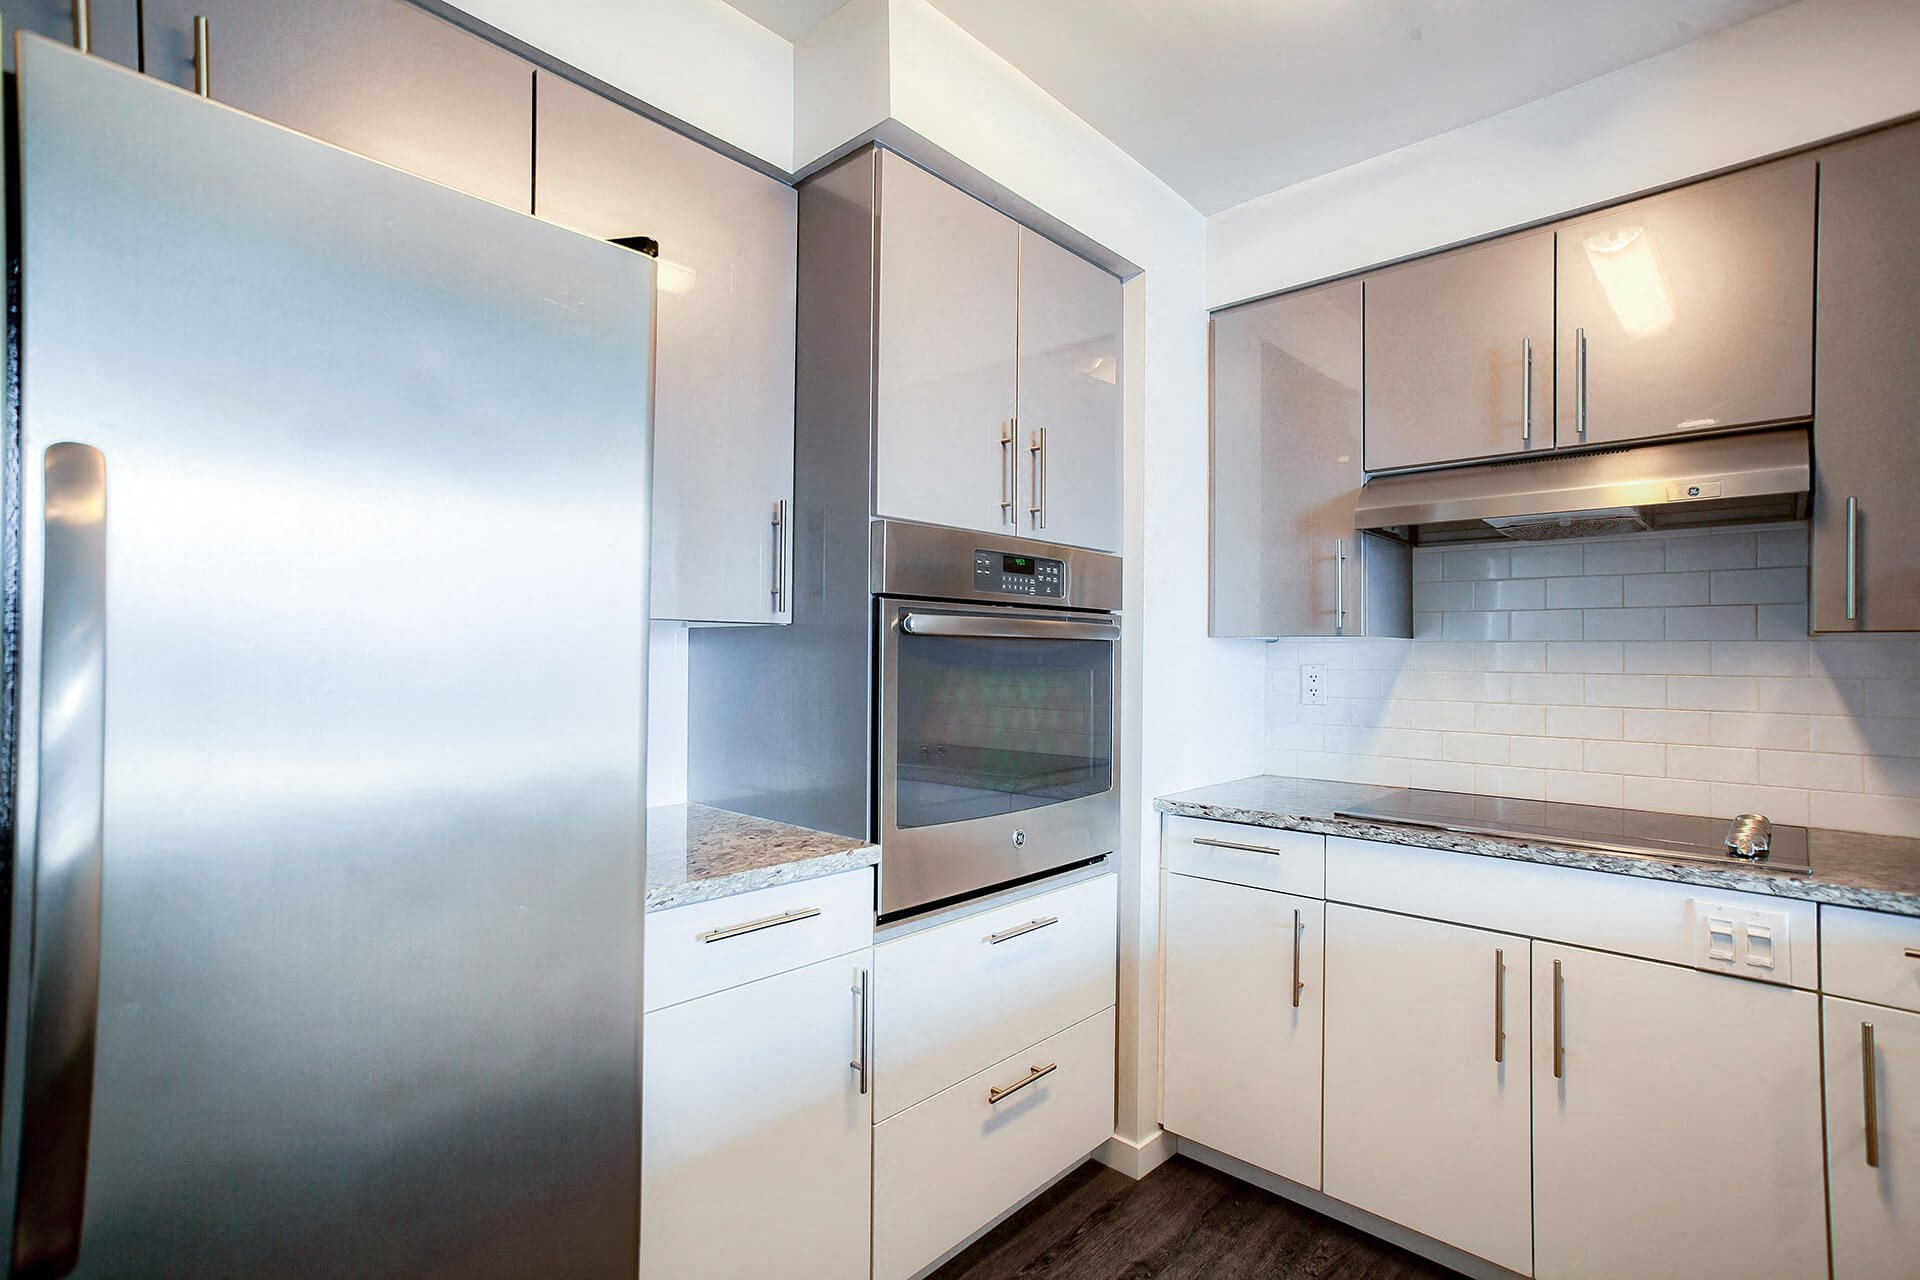 Stainless Steel Appliances at Waterside Place by Windsor, 02210, MA